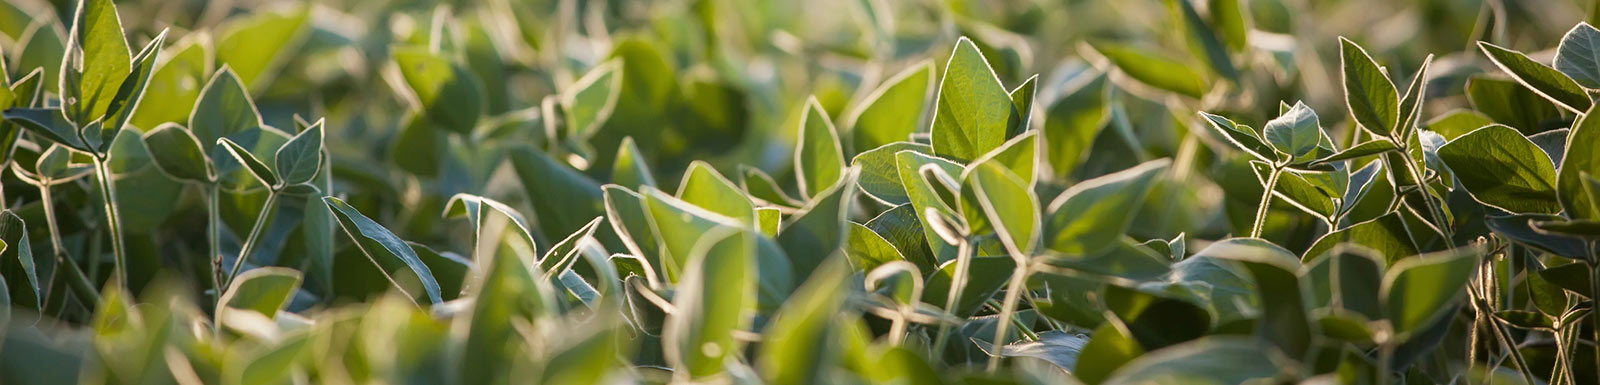 Close up of soybean plants